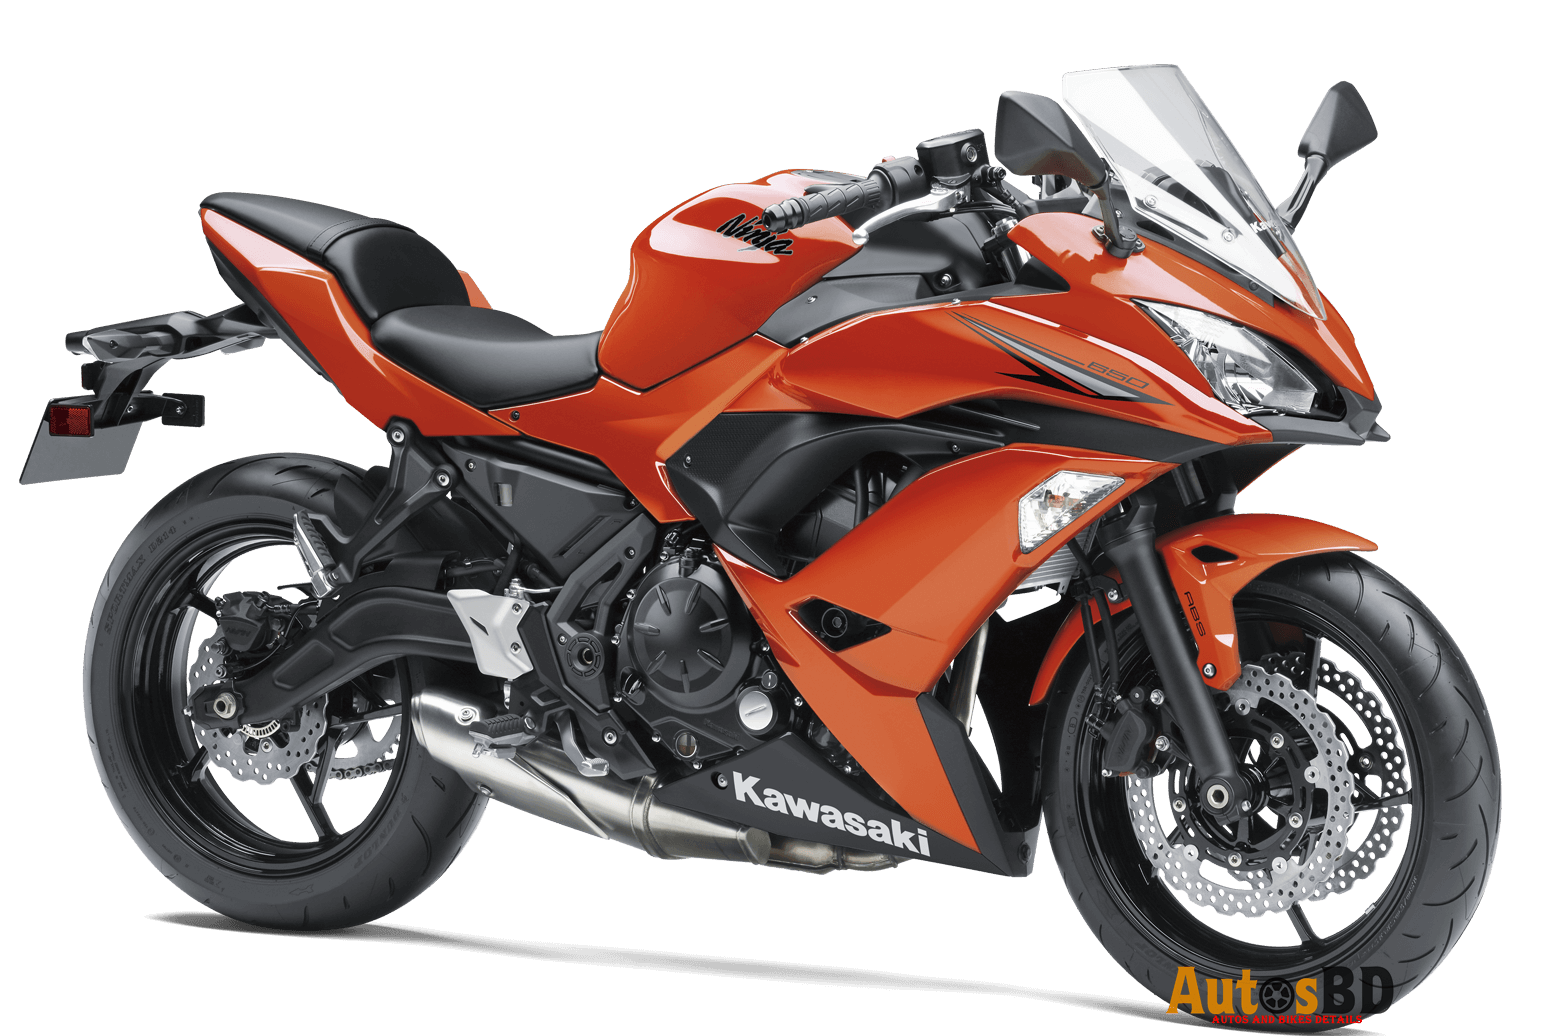 Kawasaki Ninja 650R Motorcycle Specification